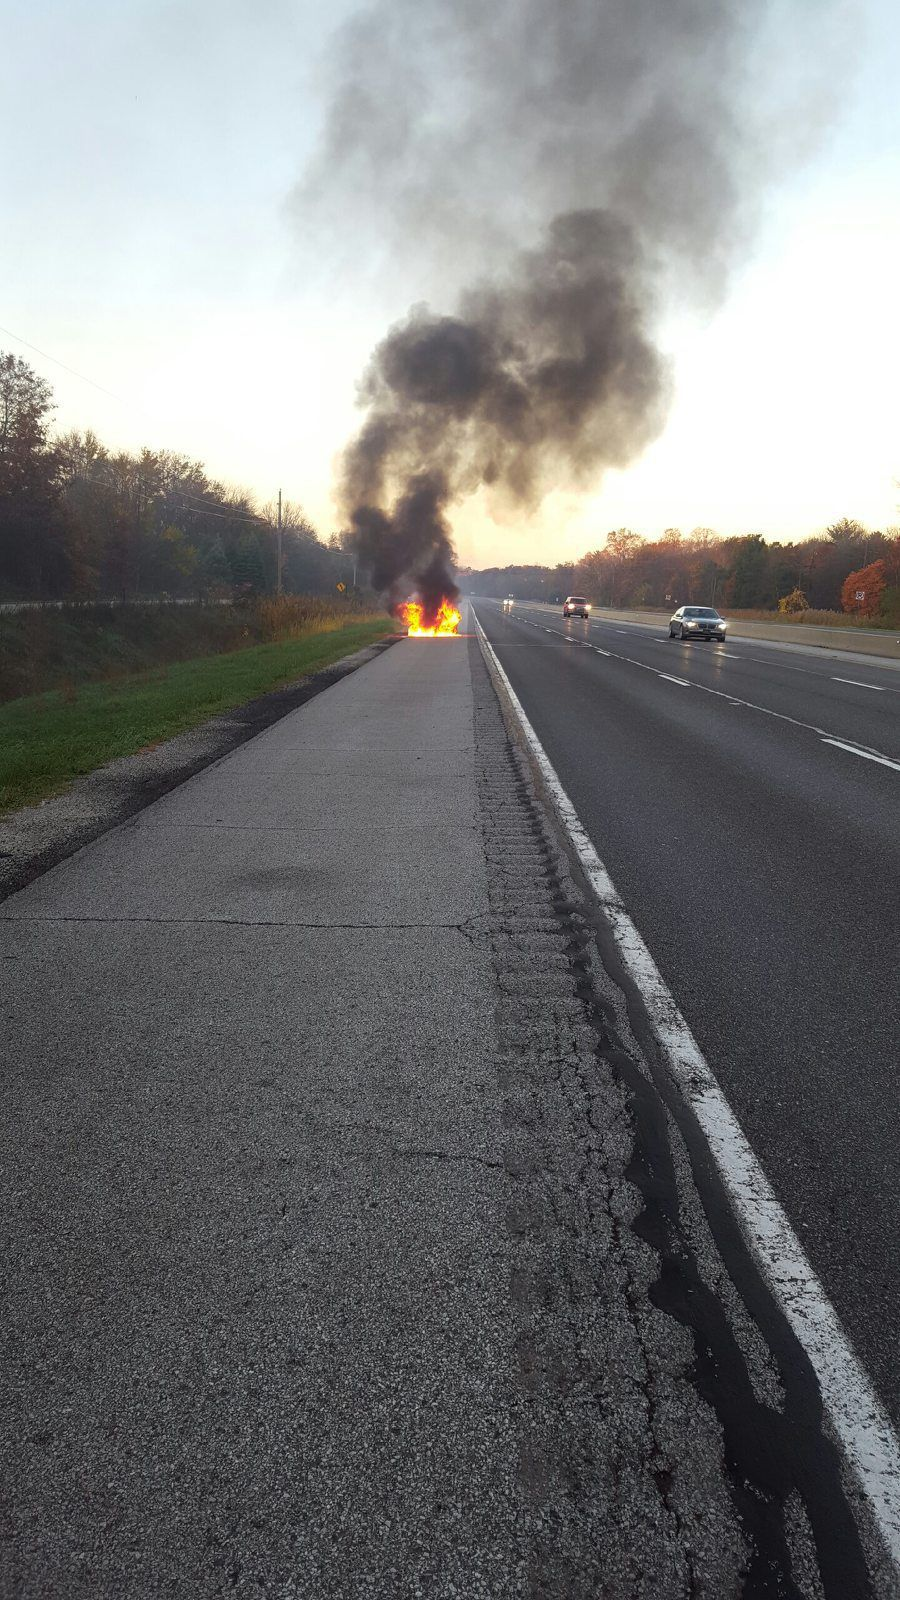 Niles woman contacts rescuer after car fire laporte for Laporte county phone book